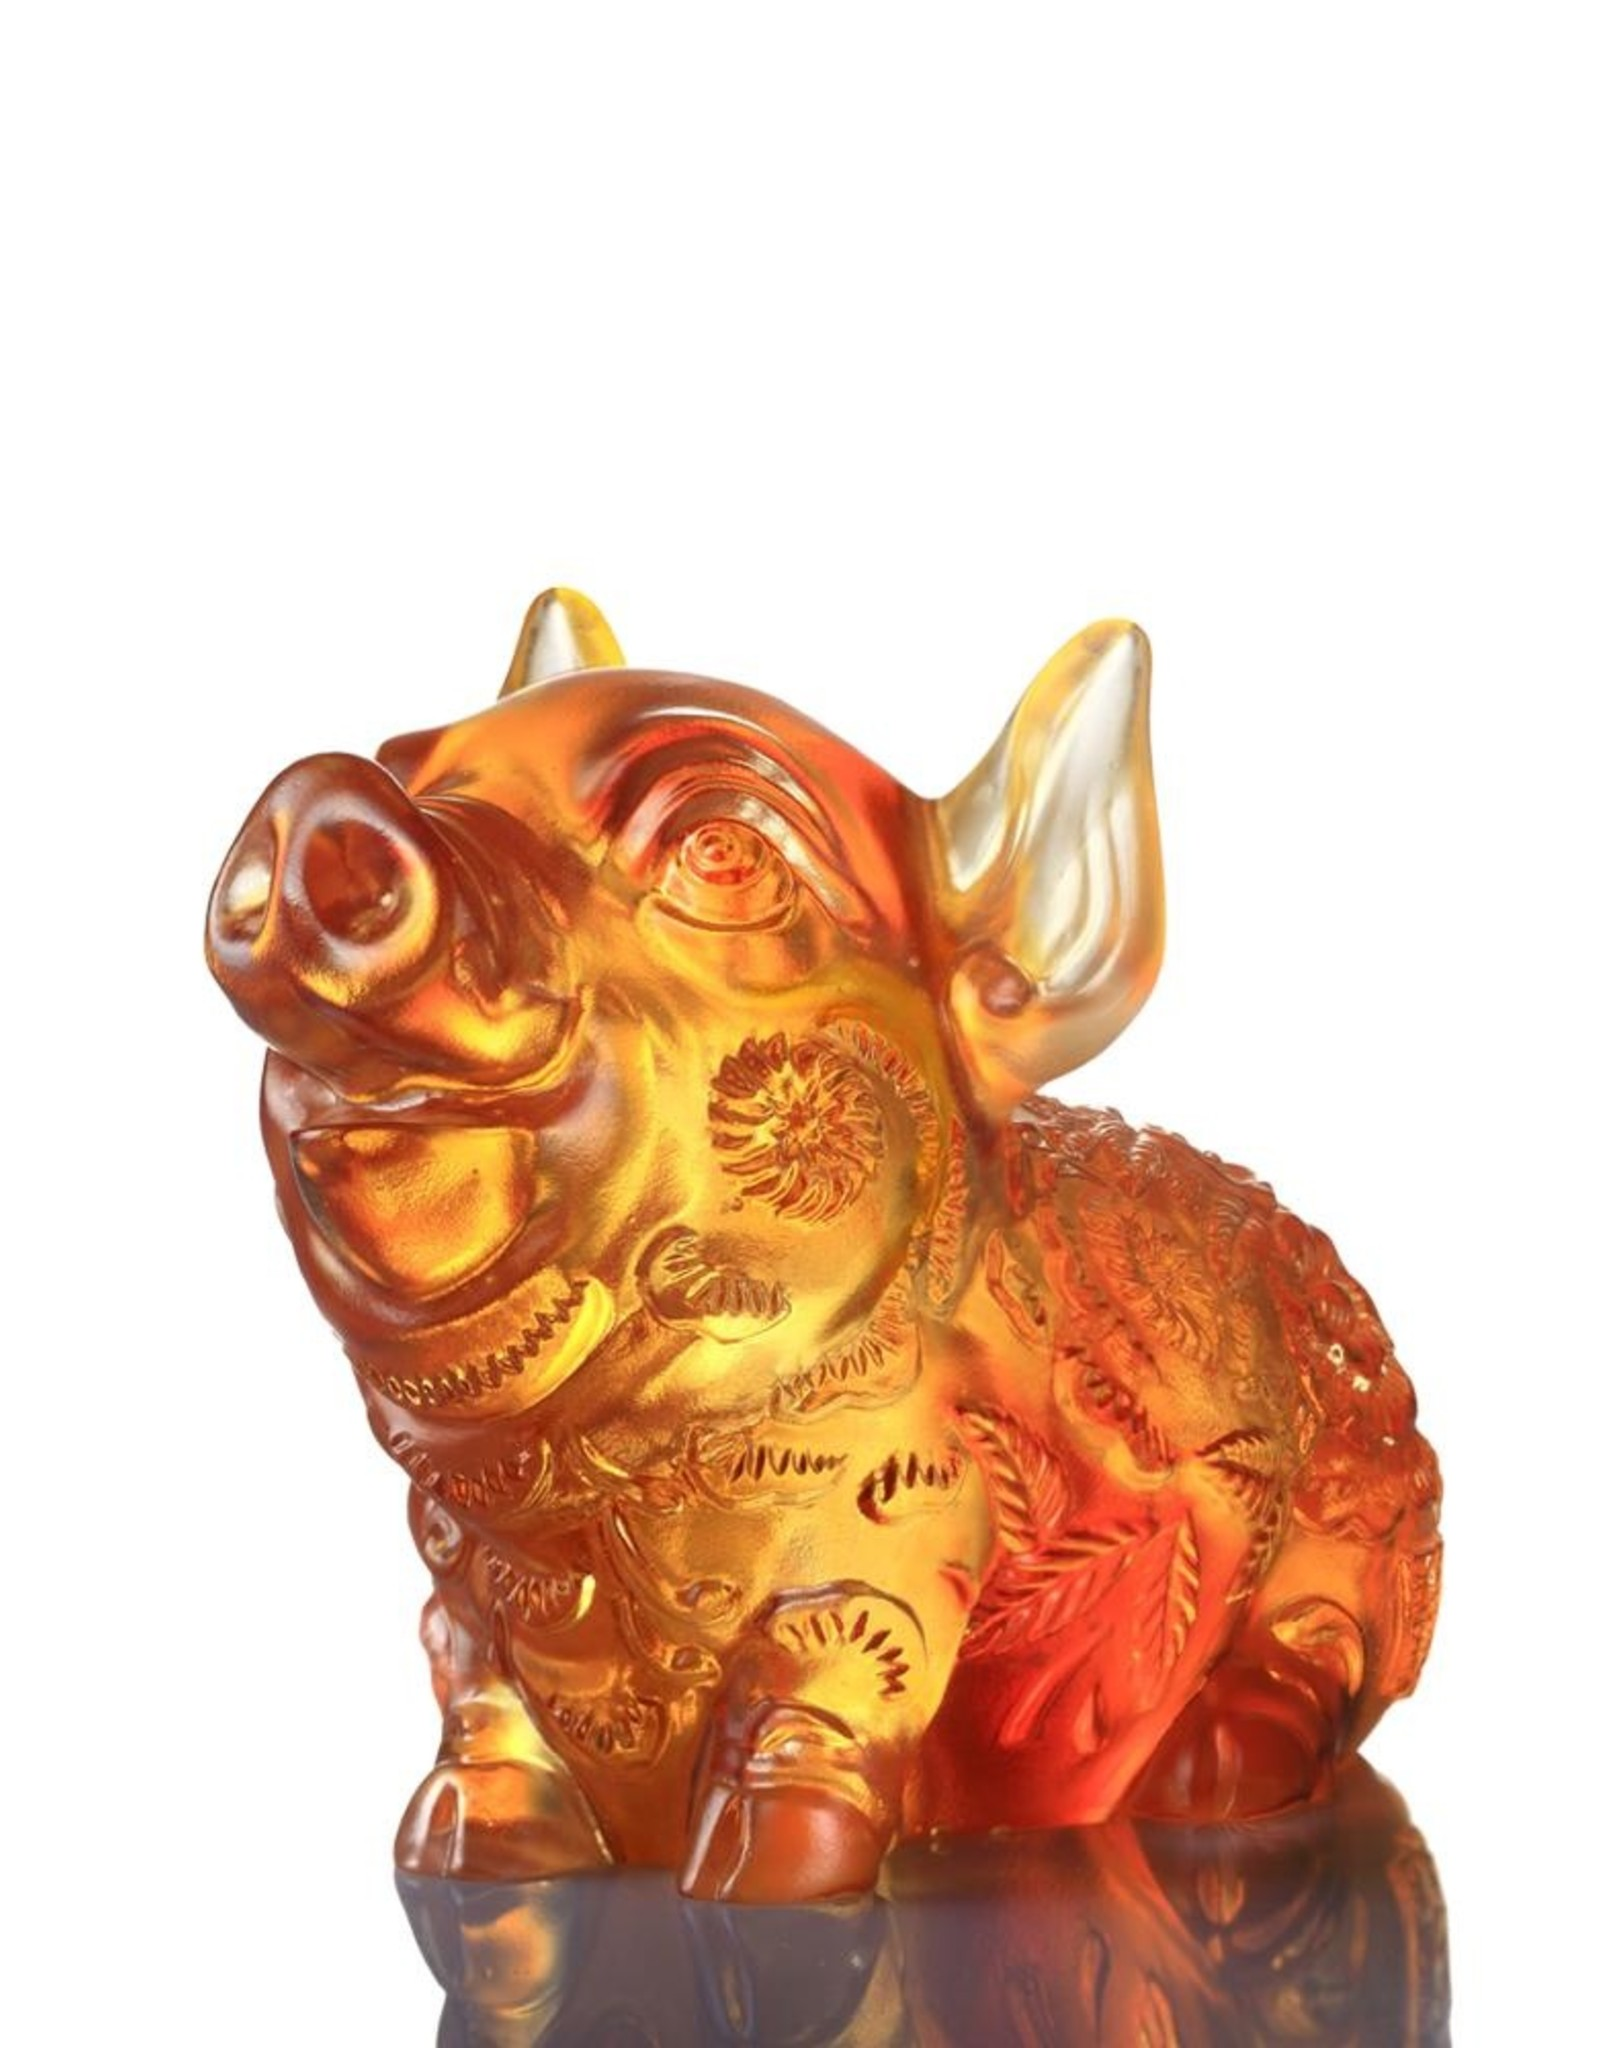 """LIULI Crystal Art Crystal Year of the Pig """"Piglet of Fortune"""" Chinese Zodiac Figurine in Dark Amber/Light Amber (Limited Edition)"""